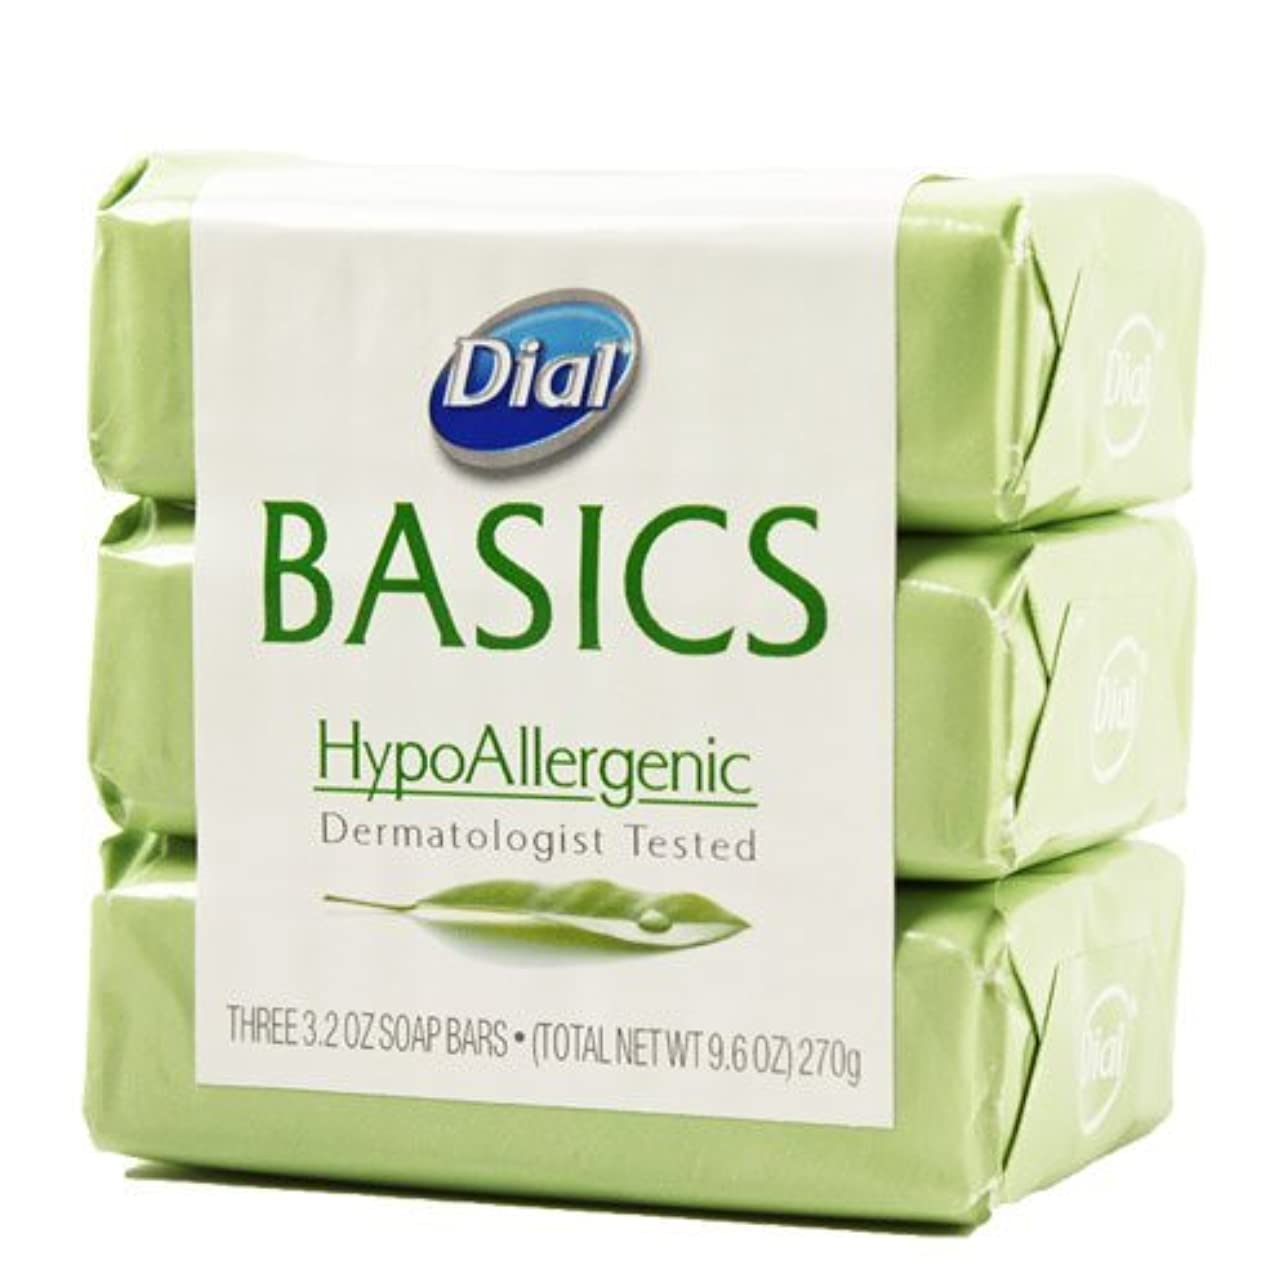 オーケストラ大臣継承Dial Basics HypoAllergenic Dermatologist Tested Bar Soap, 3.2 oz (18 Bars) by Basics